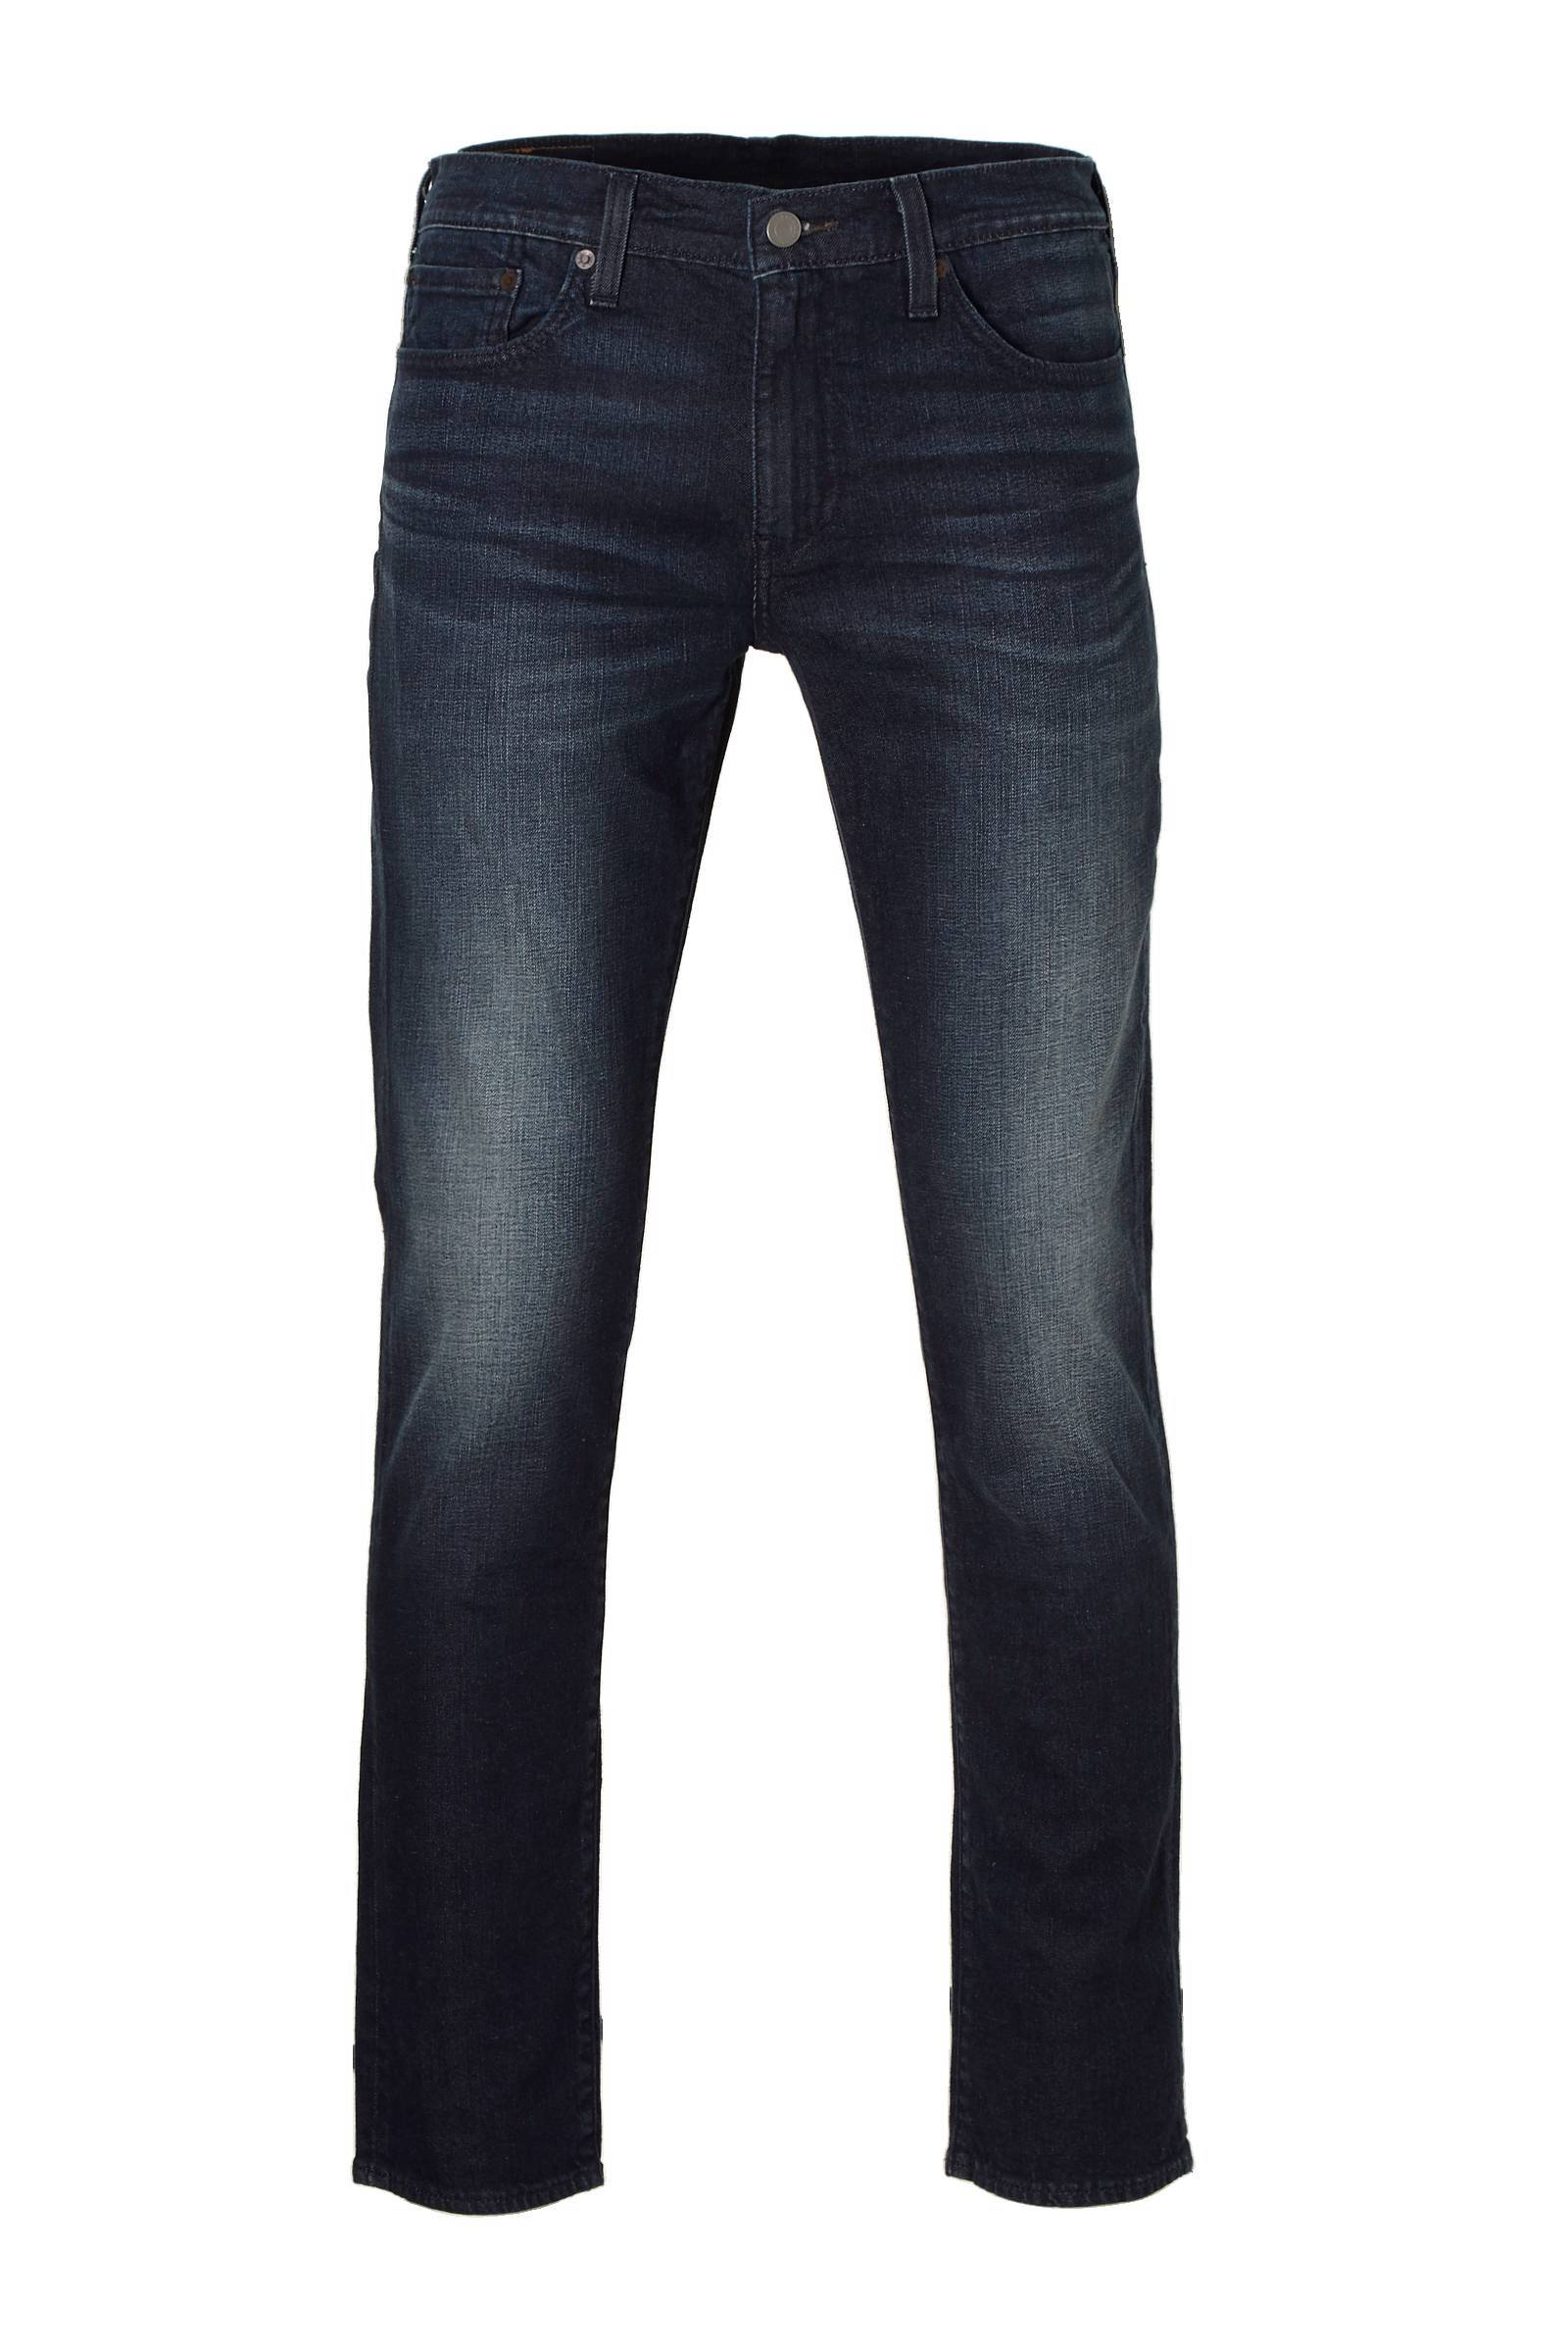 Levi's 511 slim fit jeans (heren)